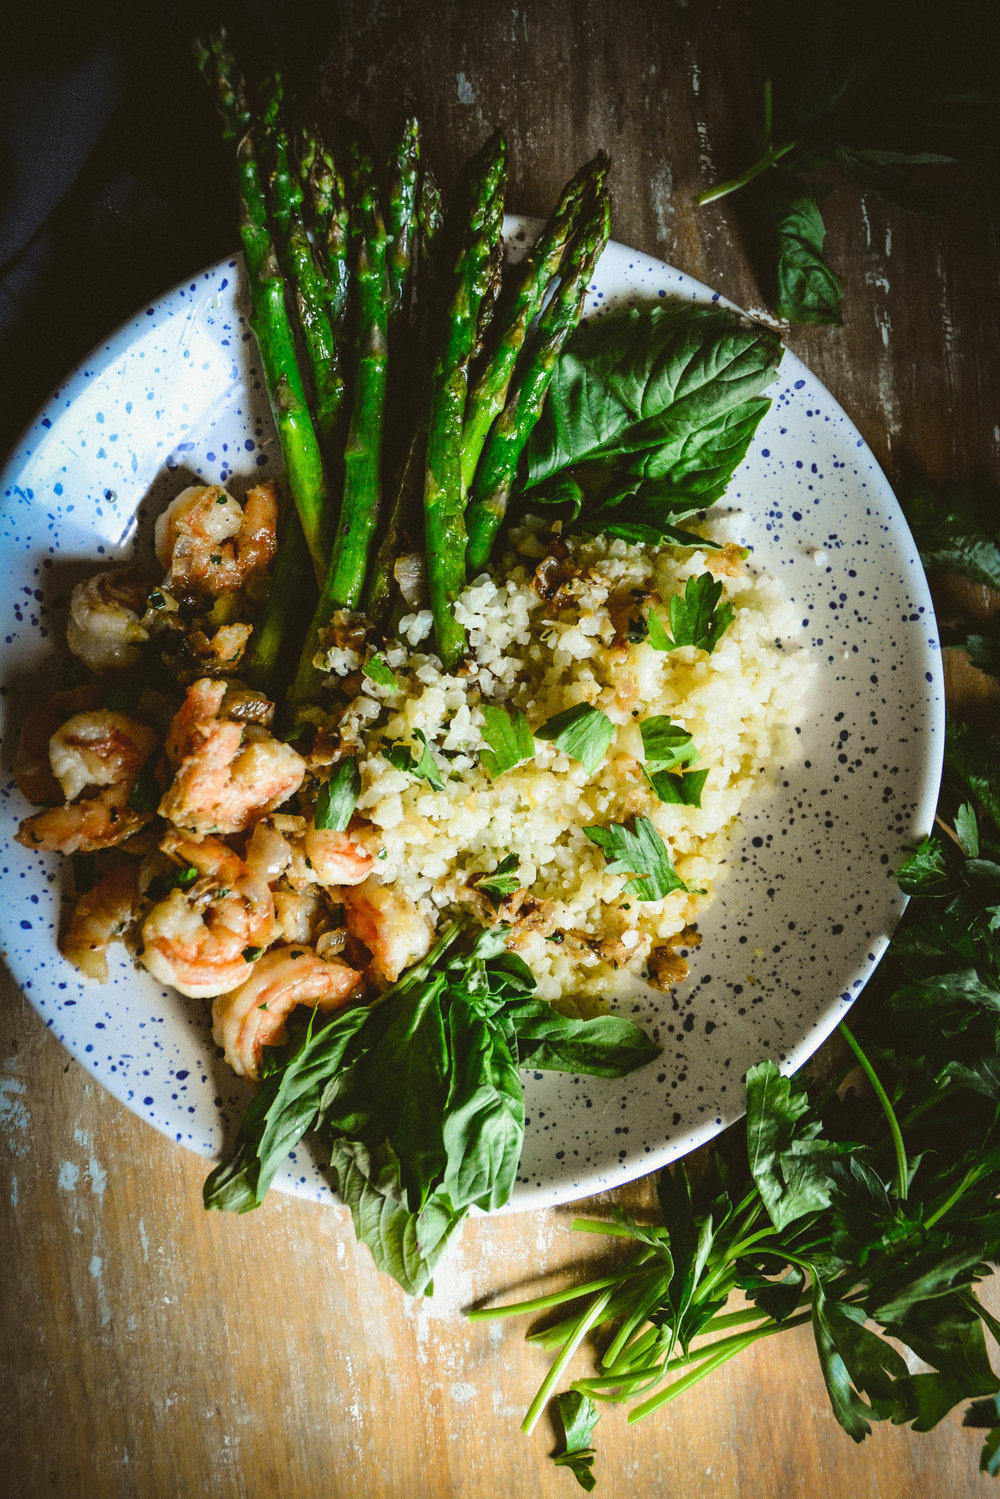 shrimp, cauliflower and asparagus in lemon oil